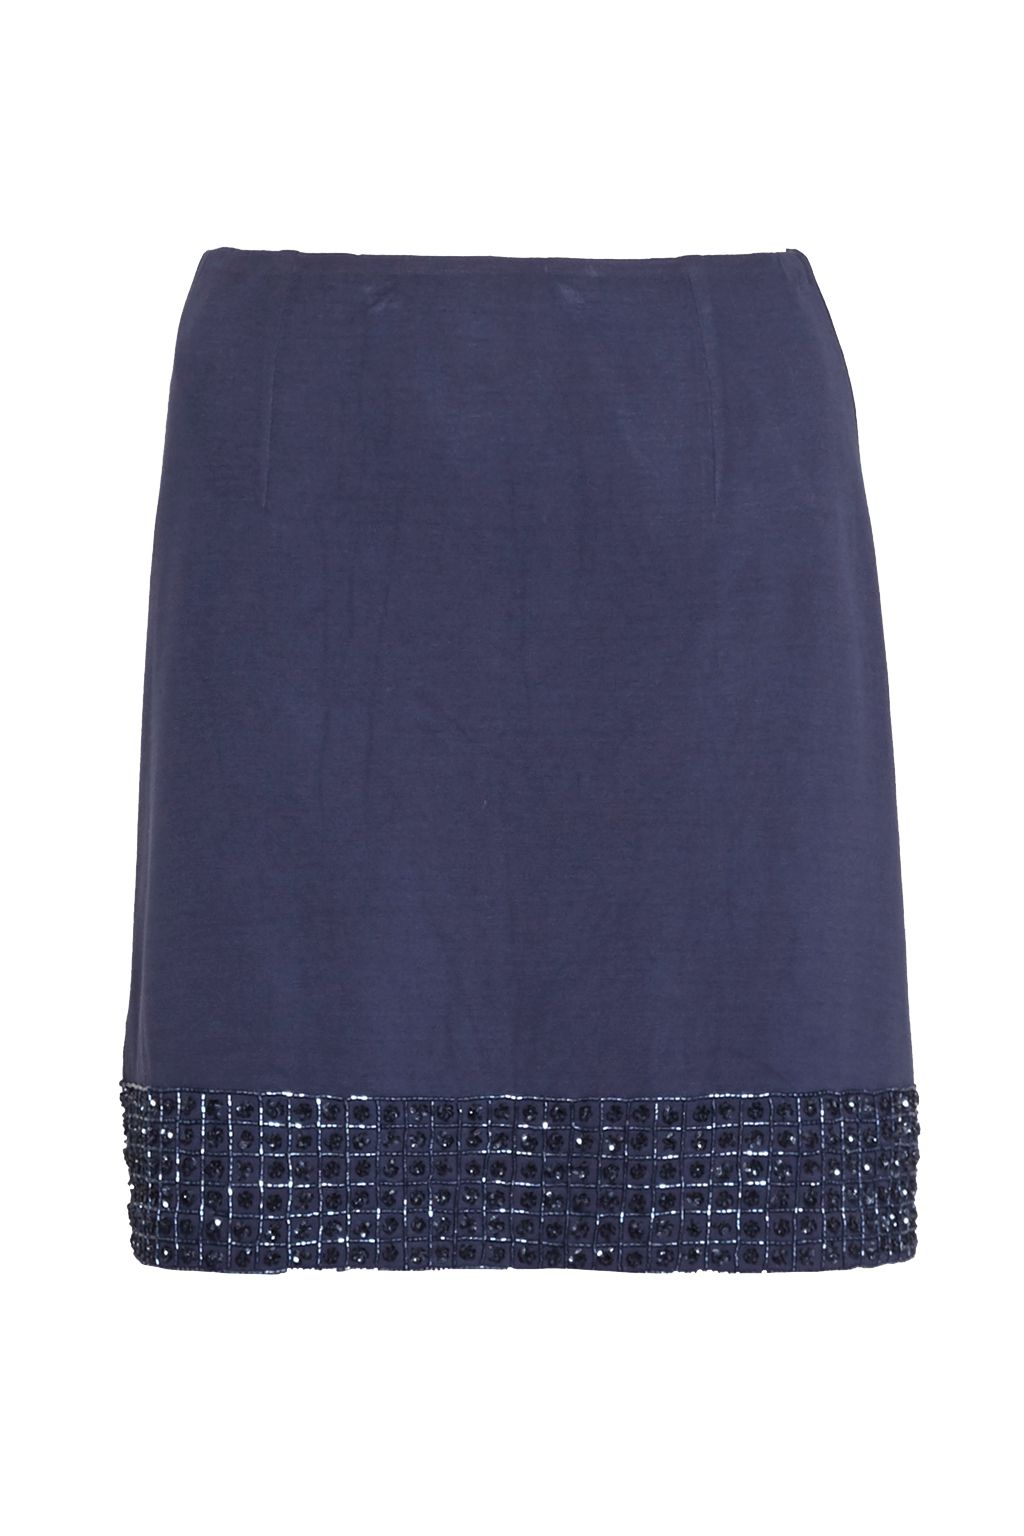 French Connection Crystal Shot Embellished Mini Skirt, Nocturnal